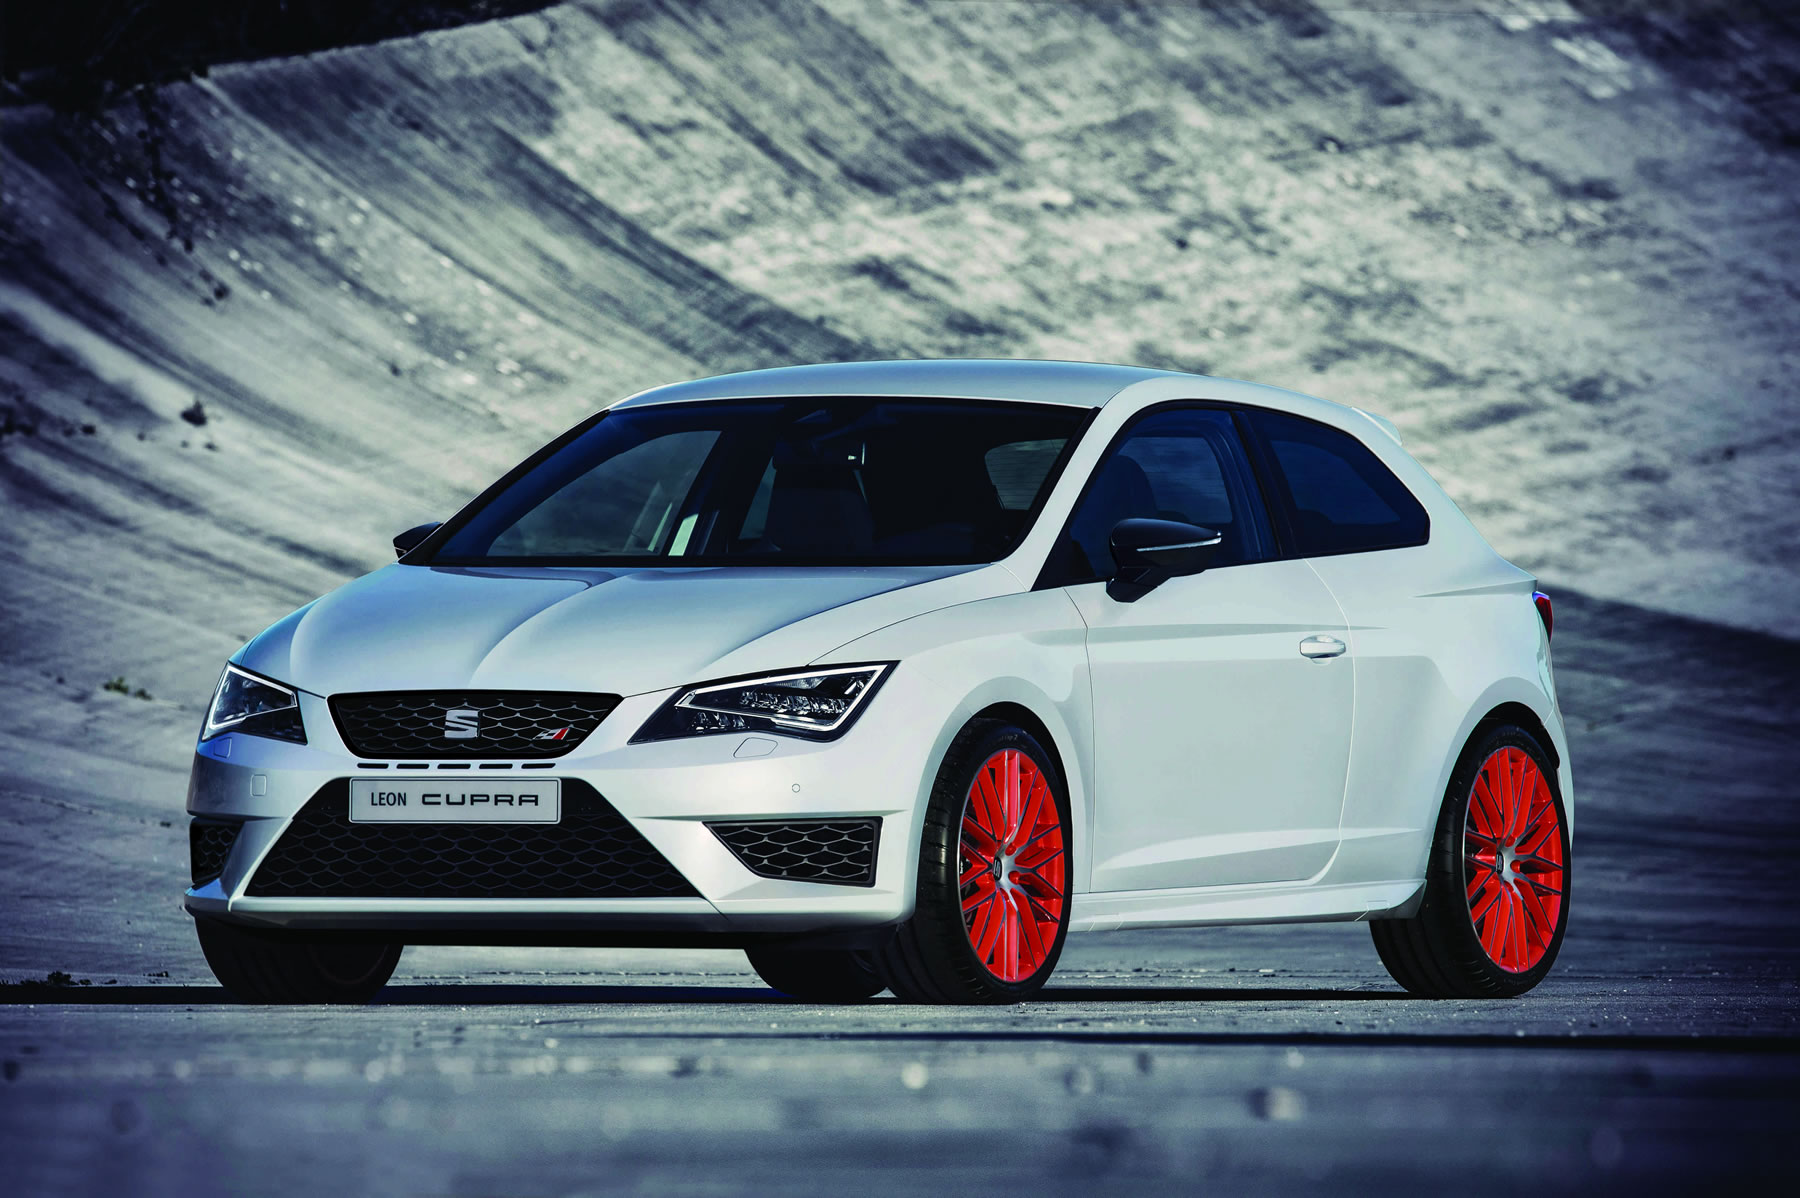 Leon Cupra Ultimate Sub8